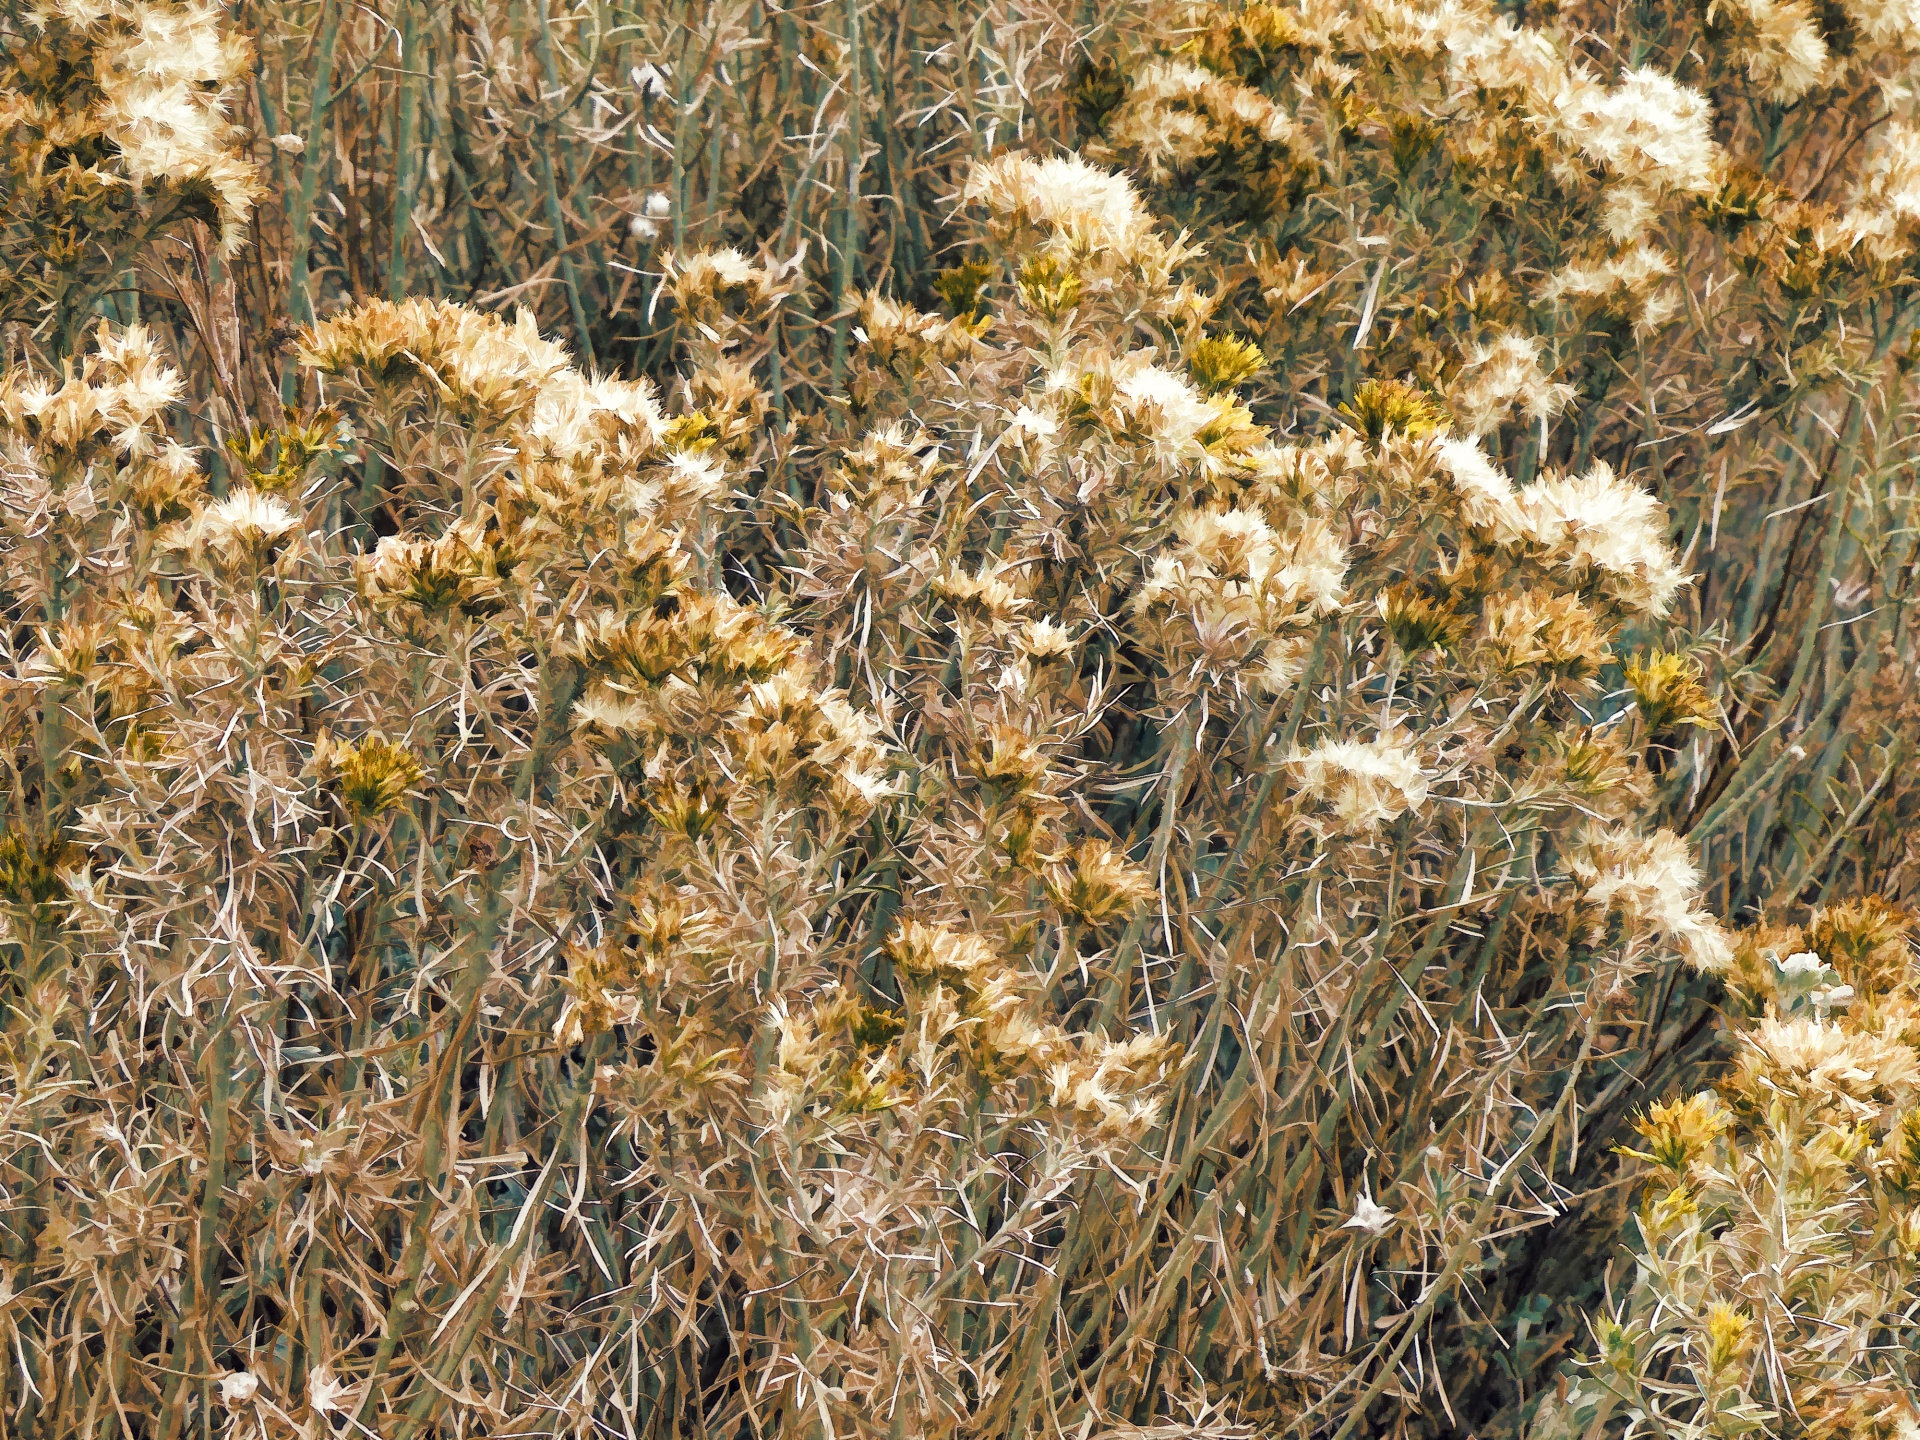 Autumn Weeds Free Stock Photo - Public Domain Pictures